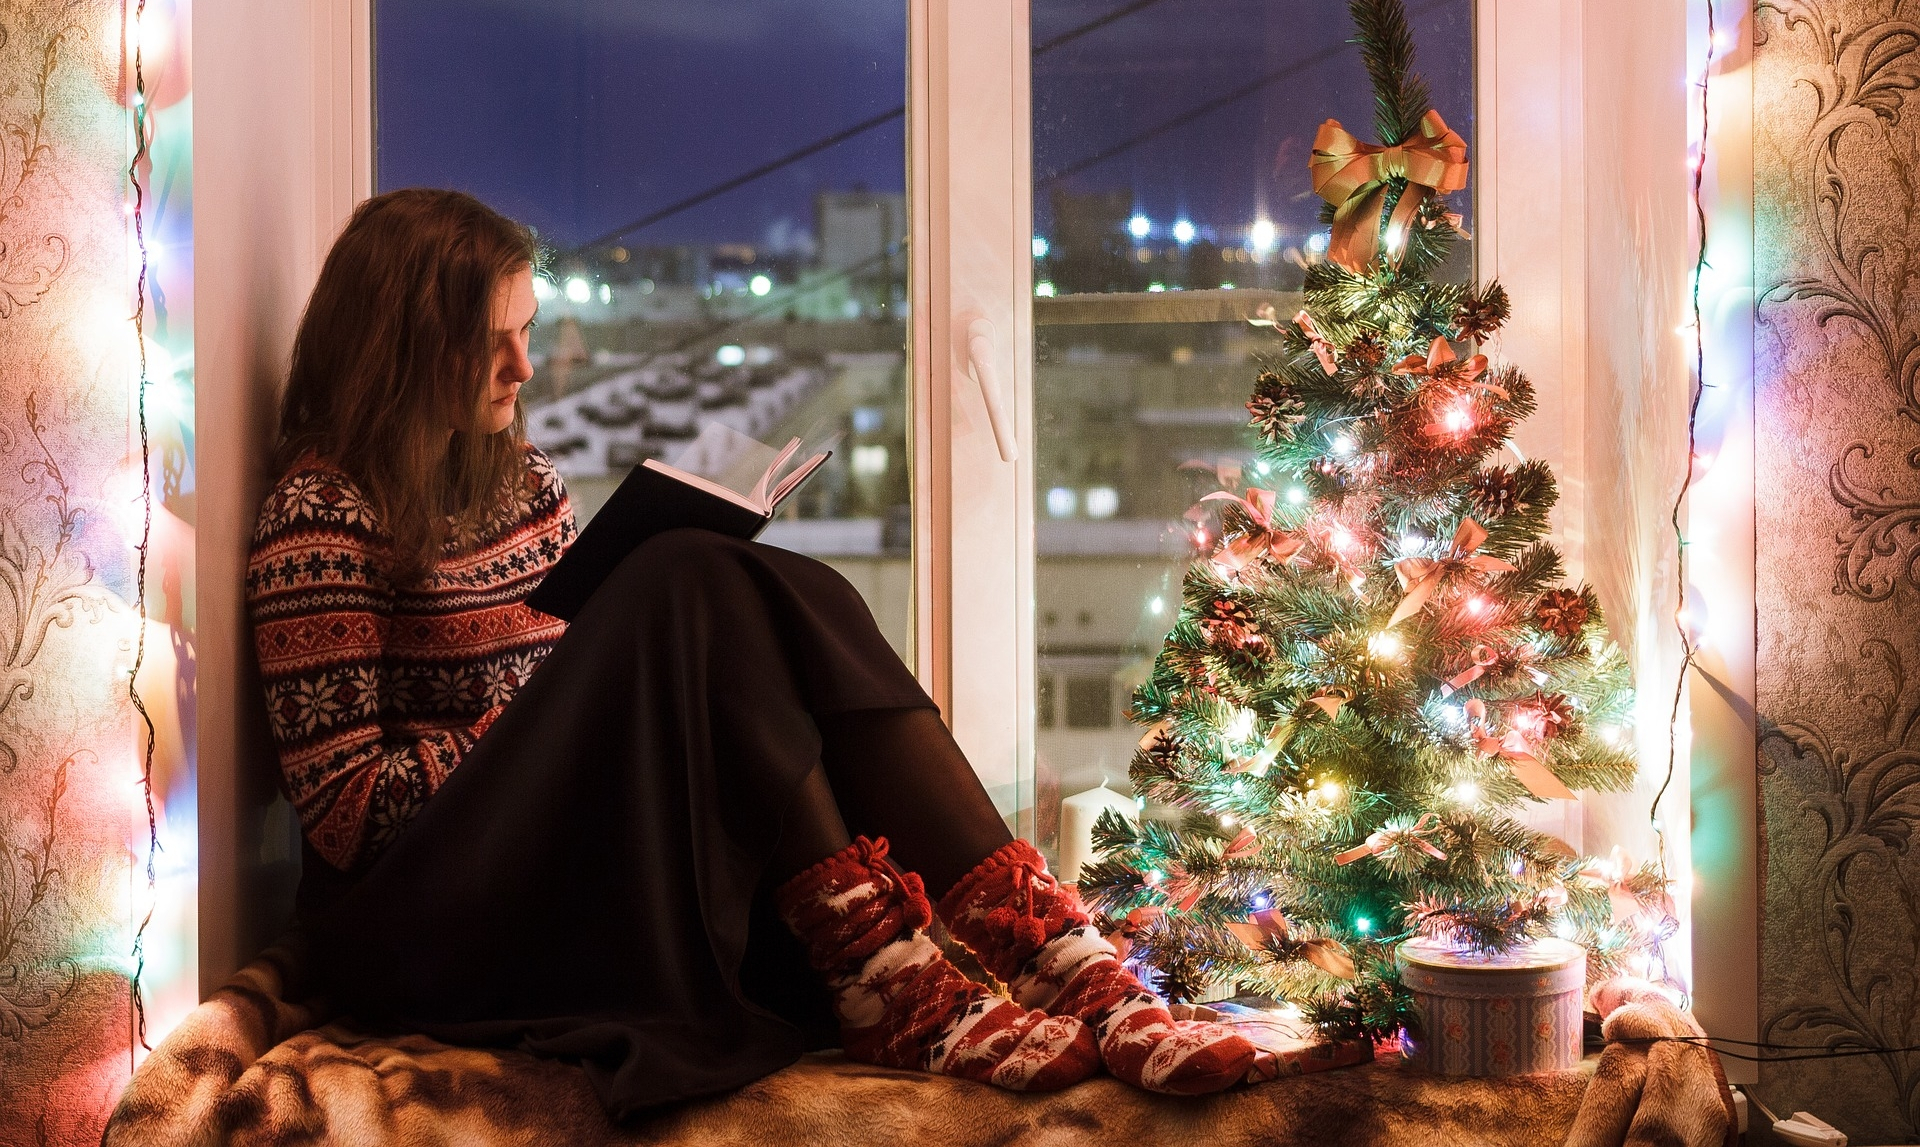 Tips for celebrating the holidays when your loved one is incarcerated